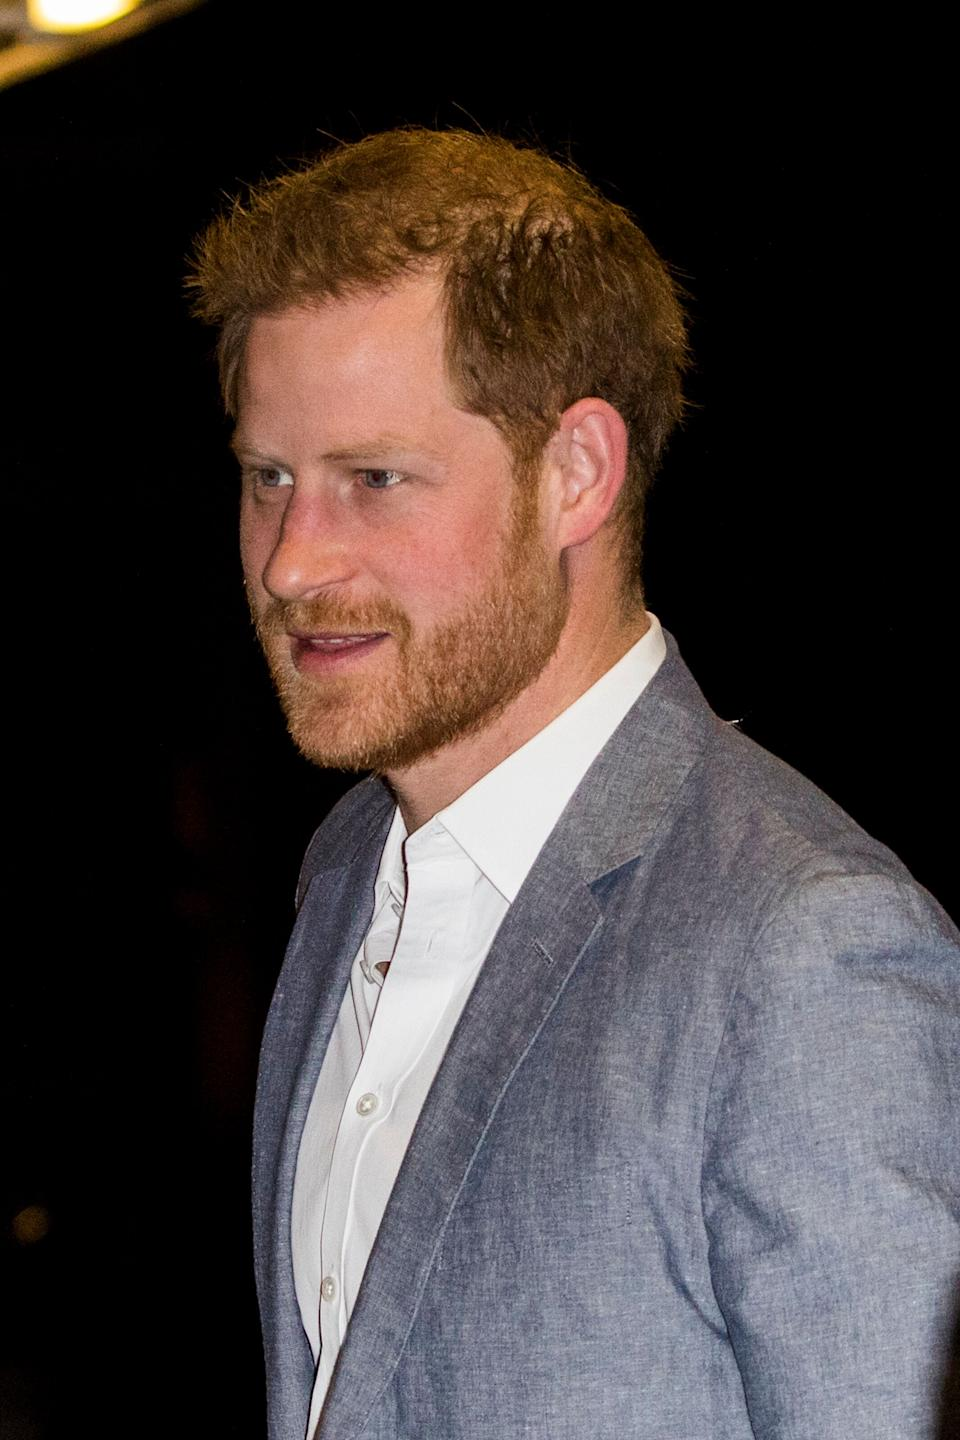 Prince Harry (Photo: Tristan Fewings via Getty Images)